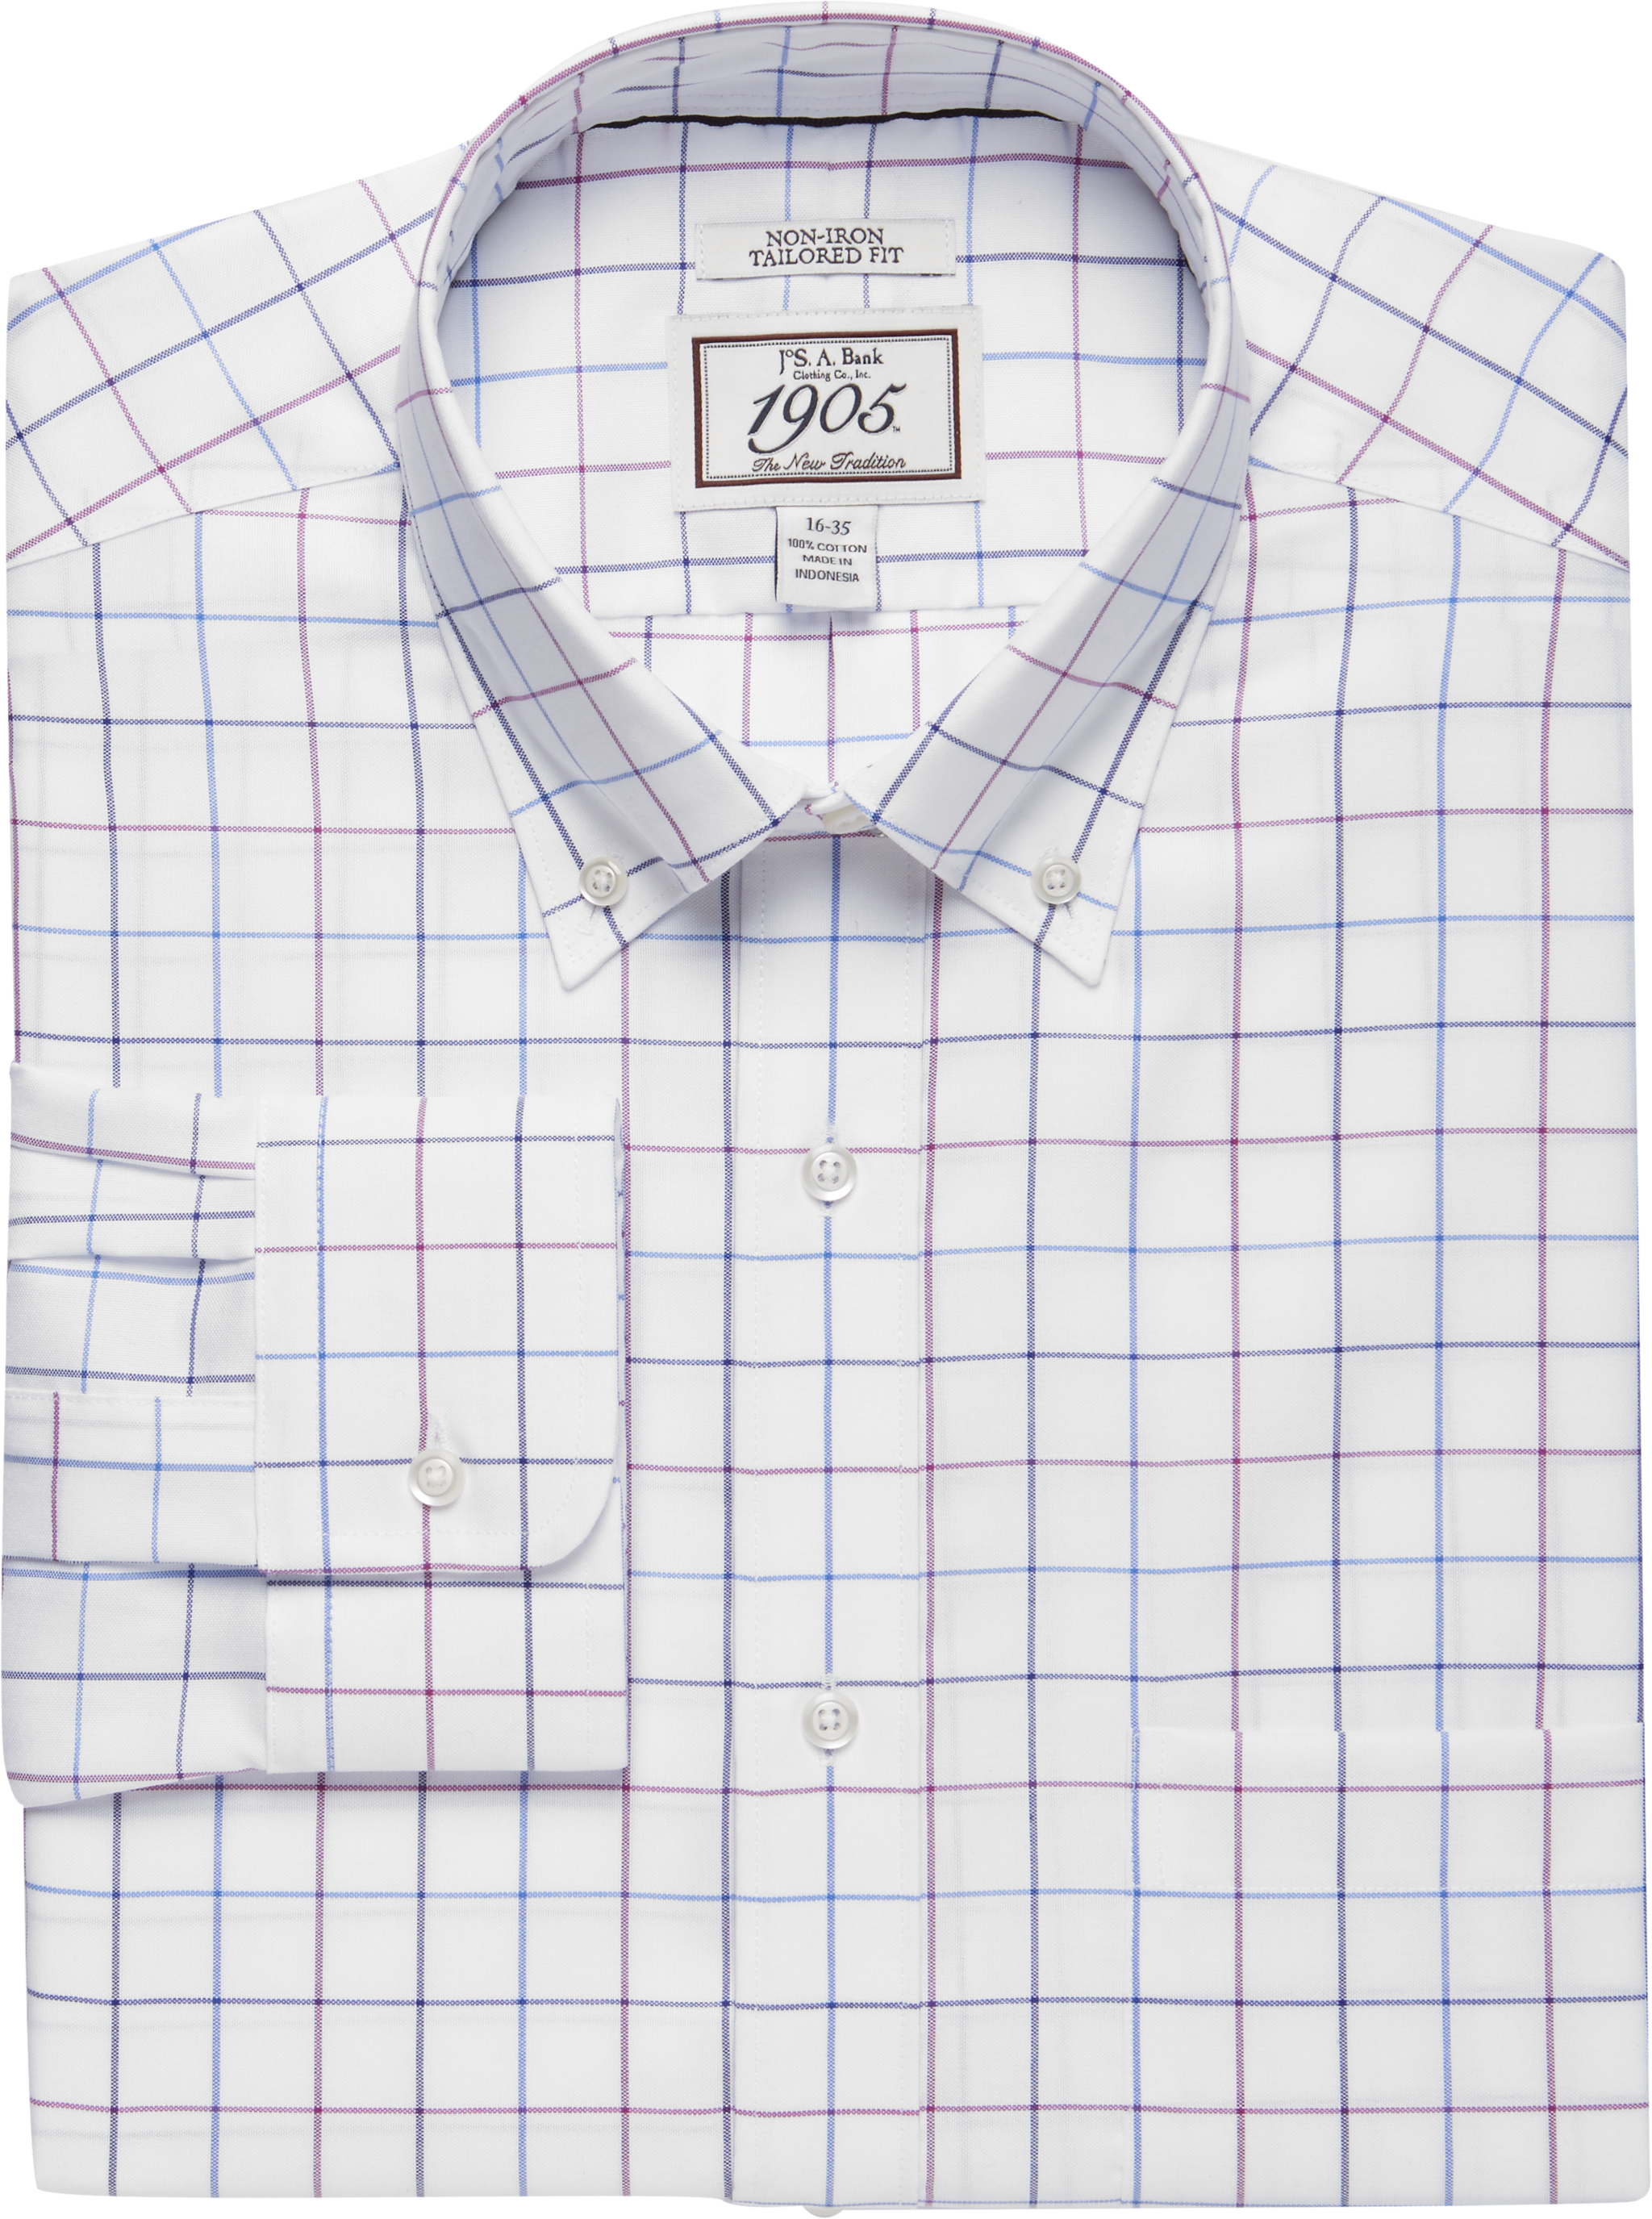 1905 Collection Tailored Fit Button Down Collar Windowpane Dress Shirt Big Tall Clearance Clearance Dress Shirts Specials Jos A Bank In 2021 Shirt Dress Non Iron Dress Shirts Button Down Collar [ 2751 x 2048 Pixel ]